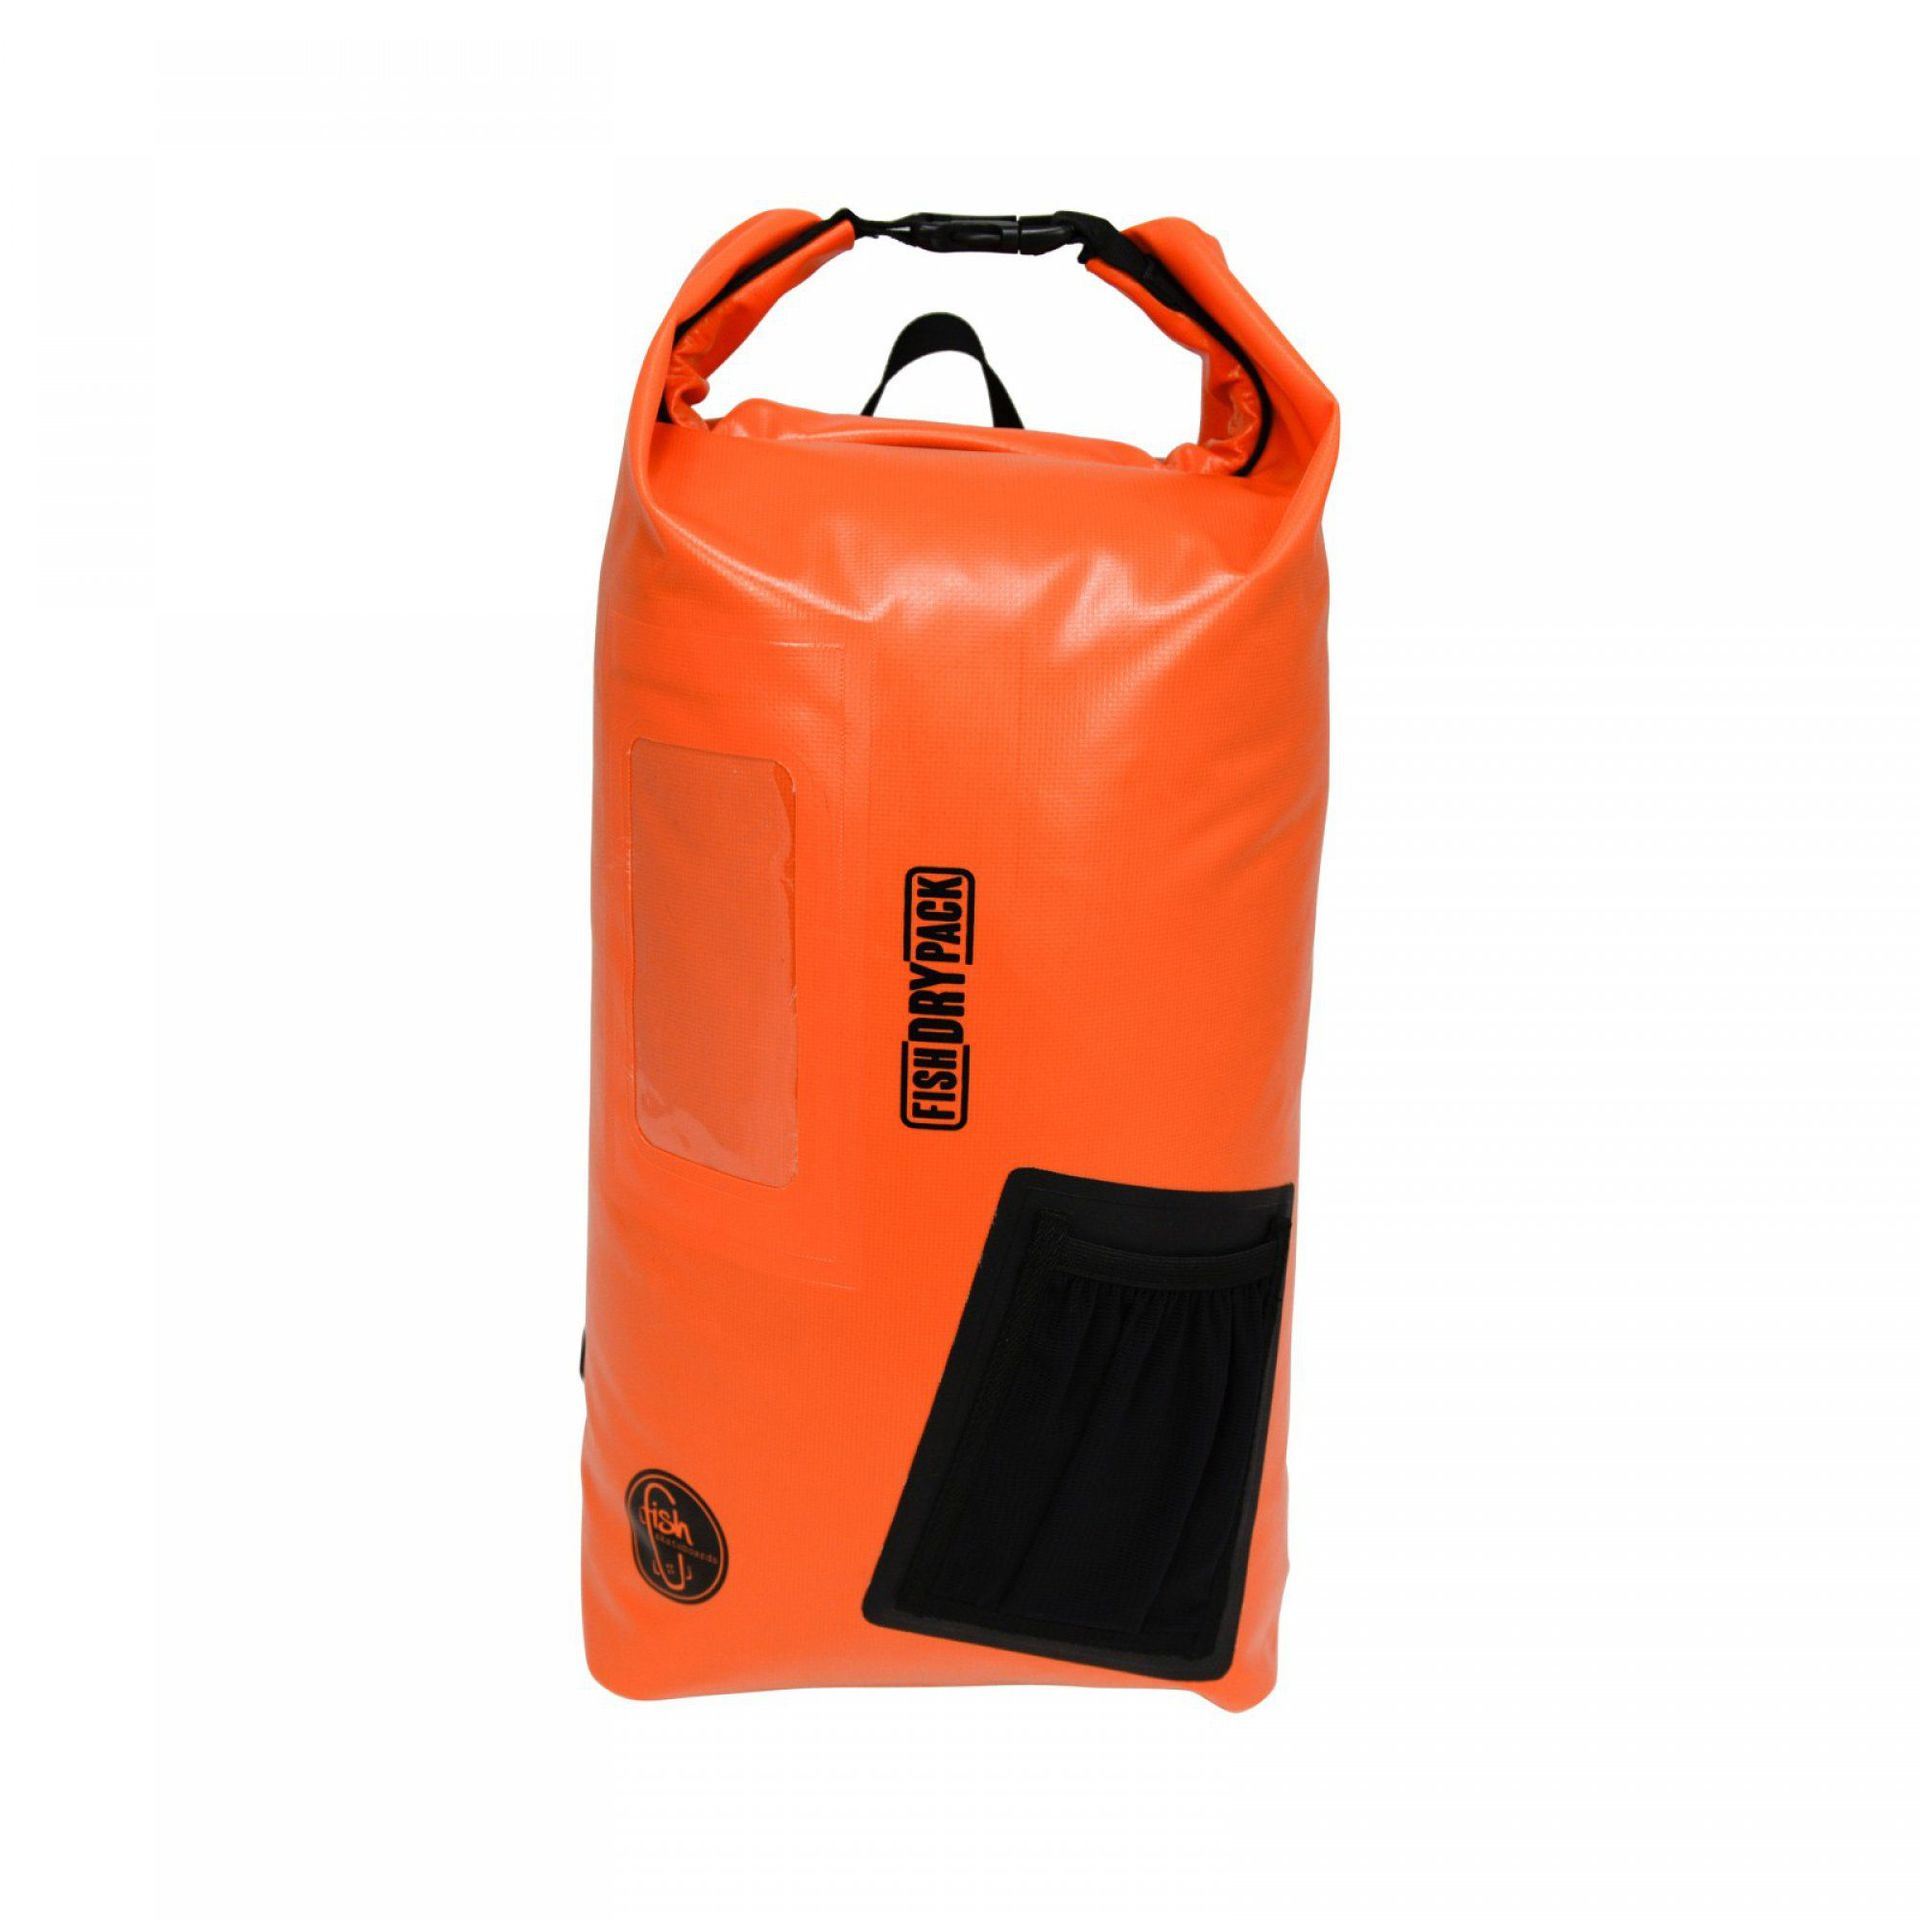 PLECAK FISH SKATEBOARDS FISH DRY PACK 18L ORANGE 1